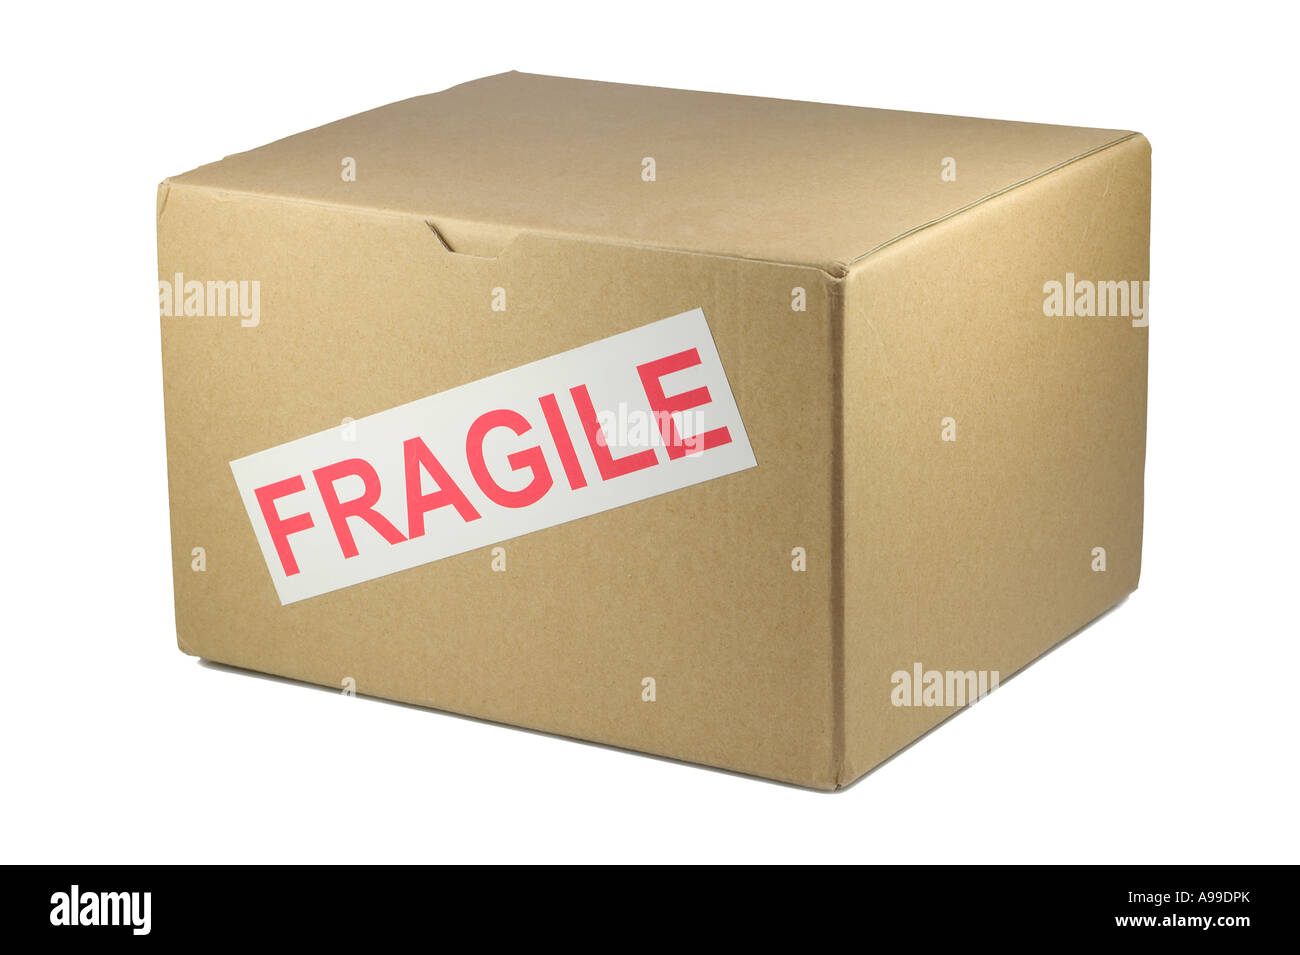 Cardboard box with Fragile on it isolated on white - Stock Image